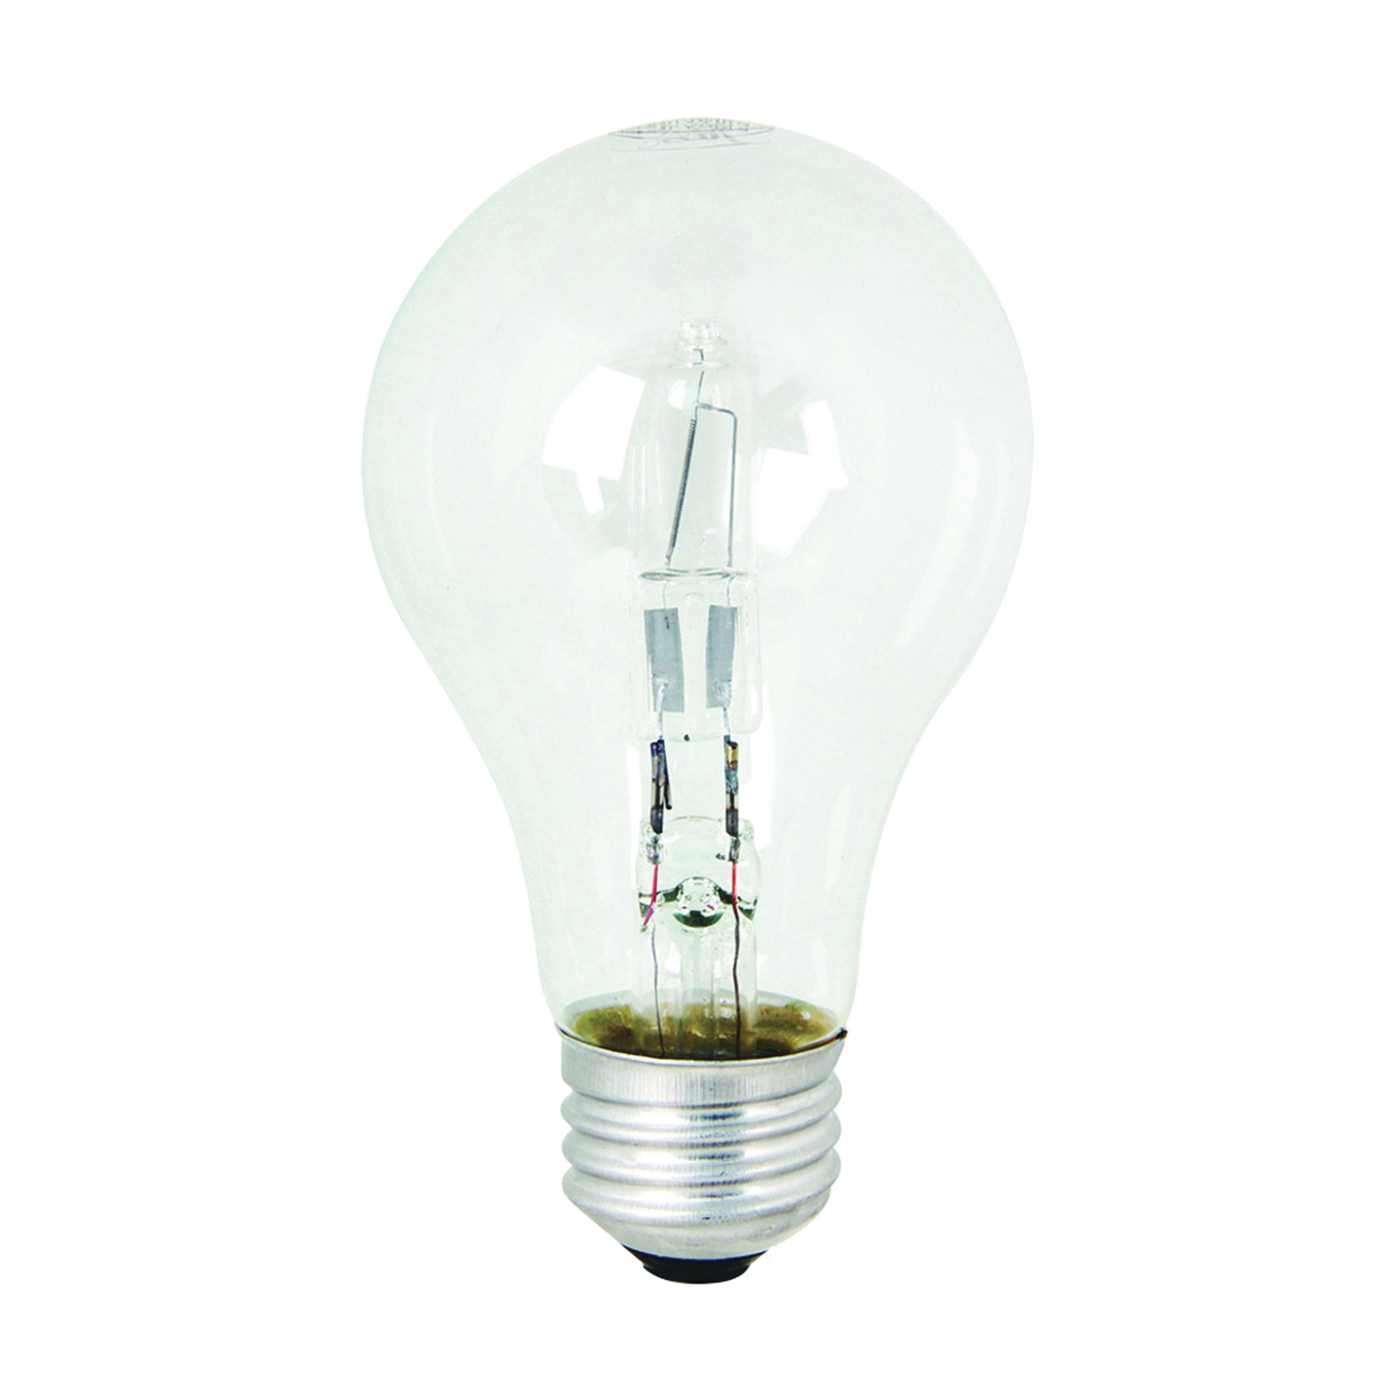 Picture of Feit Electric Q43A/CL/2 Halogen Lamp, 43 W, Medium E26 Lamp Base, A19 Lamp, Soft White Light, 750 Lumens